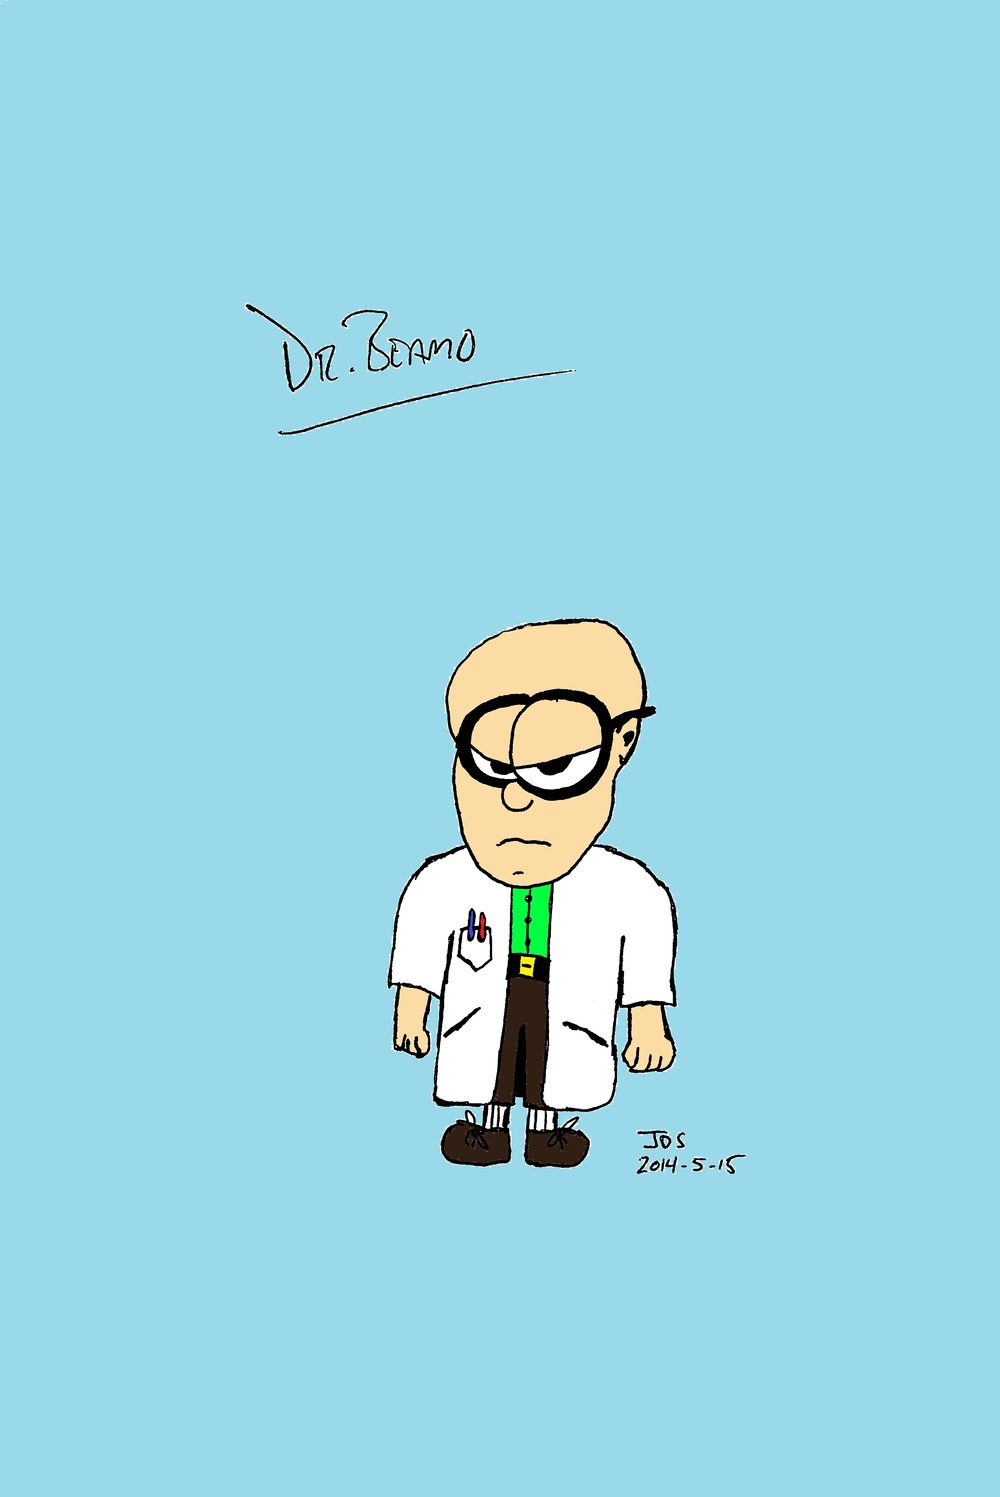 DR. BEAMO - Rogue scientist Dr. Beamo's most obvious physical characteristic is his rather large head. Be careful, though, that cranium holds a devious mind that could pave the way to Sugar Cain conquering the world.